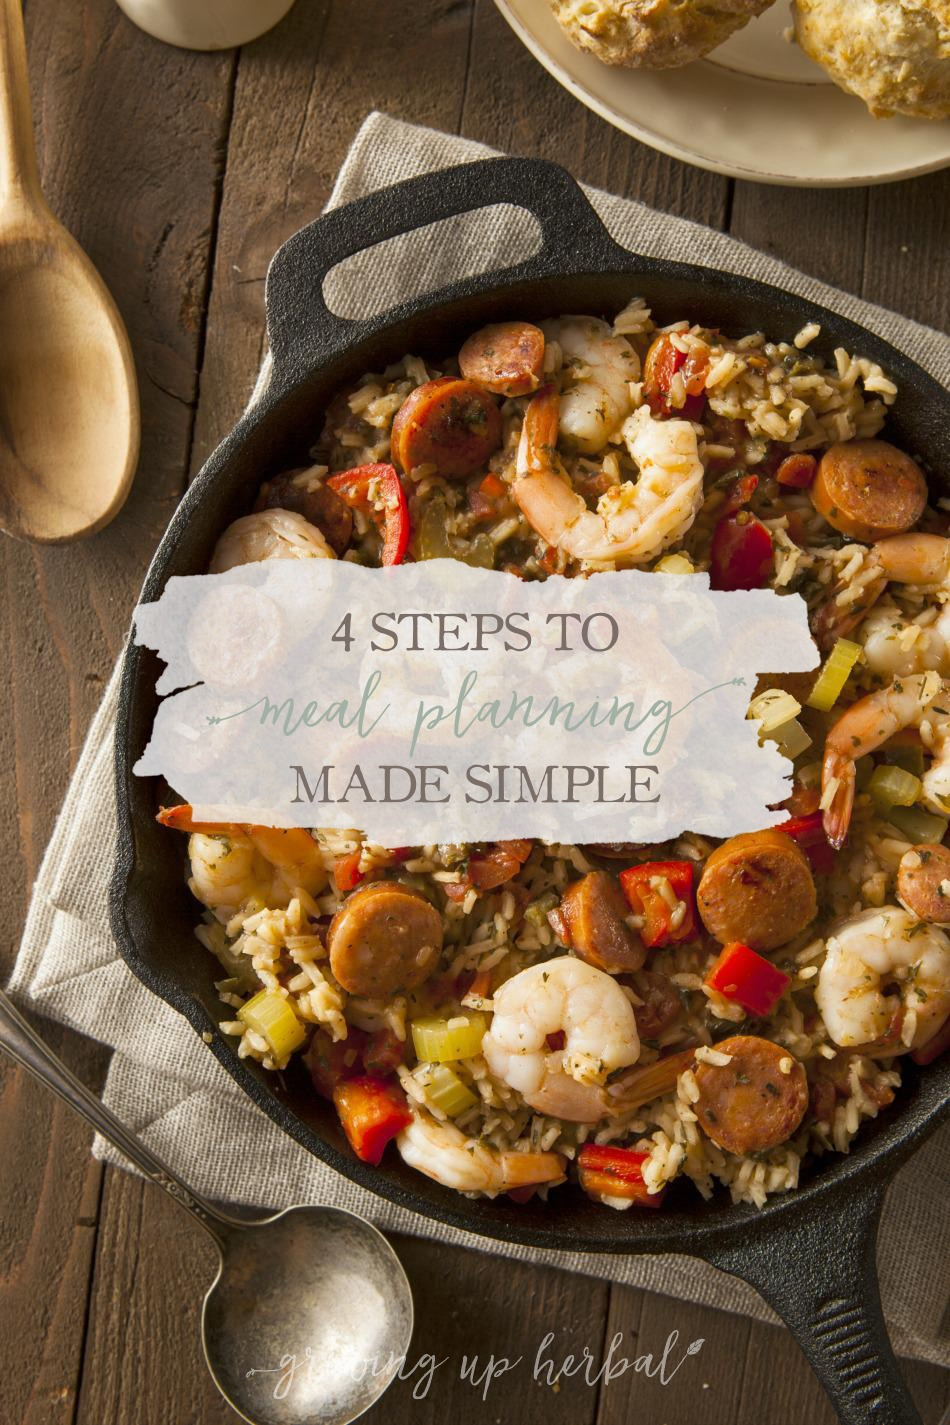 4 Steps To Meal Planning Made Simple | Growing Up Herbal | Here's my 4 step system to simplifying the weekly meal planning process!